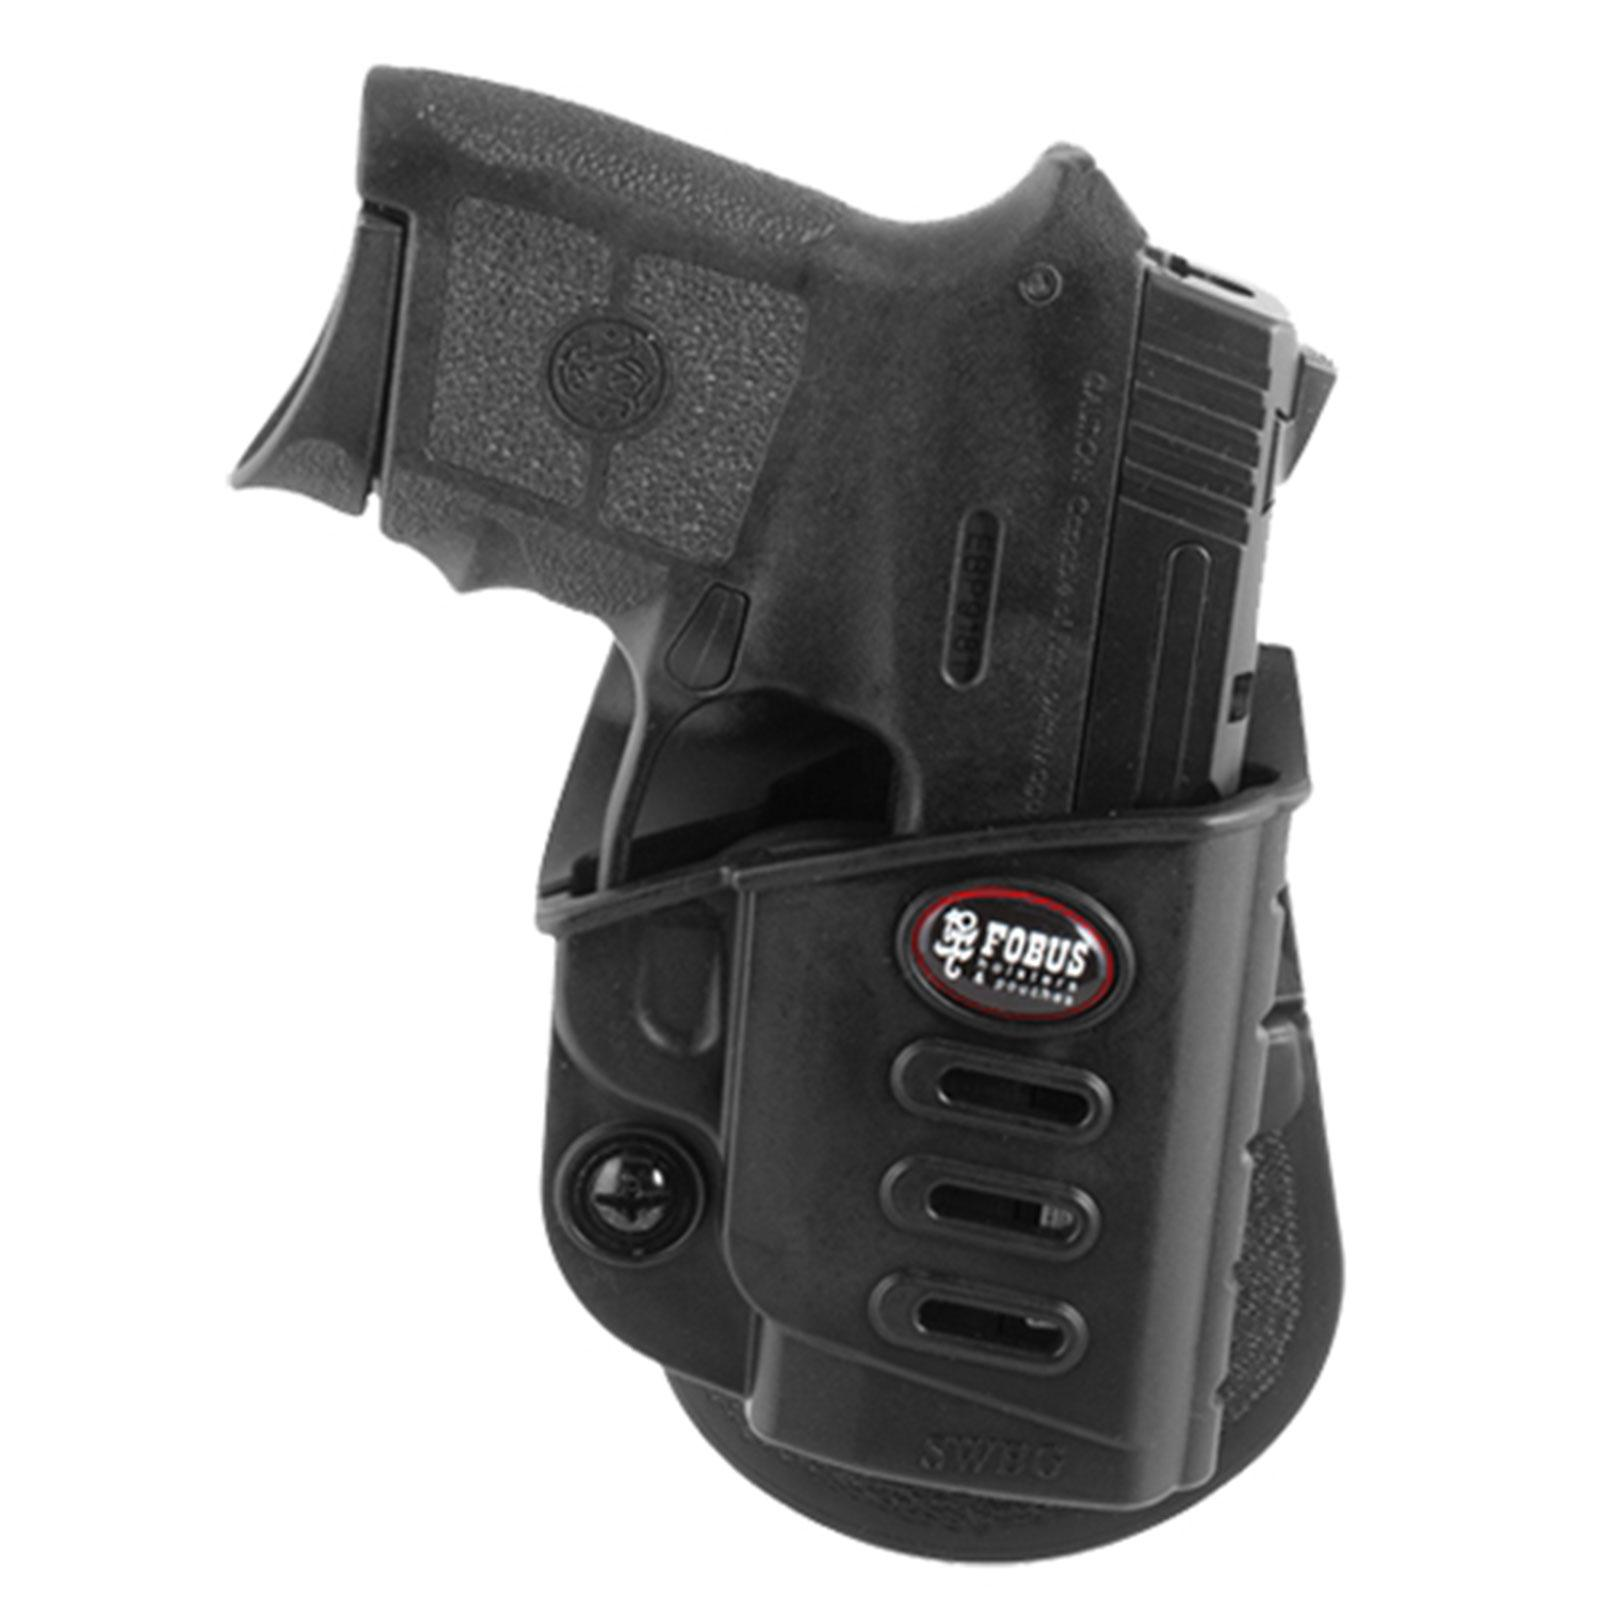 Fobus Left Hand Holster for S&W Body Guard 380 Paddle Style